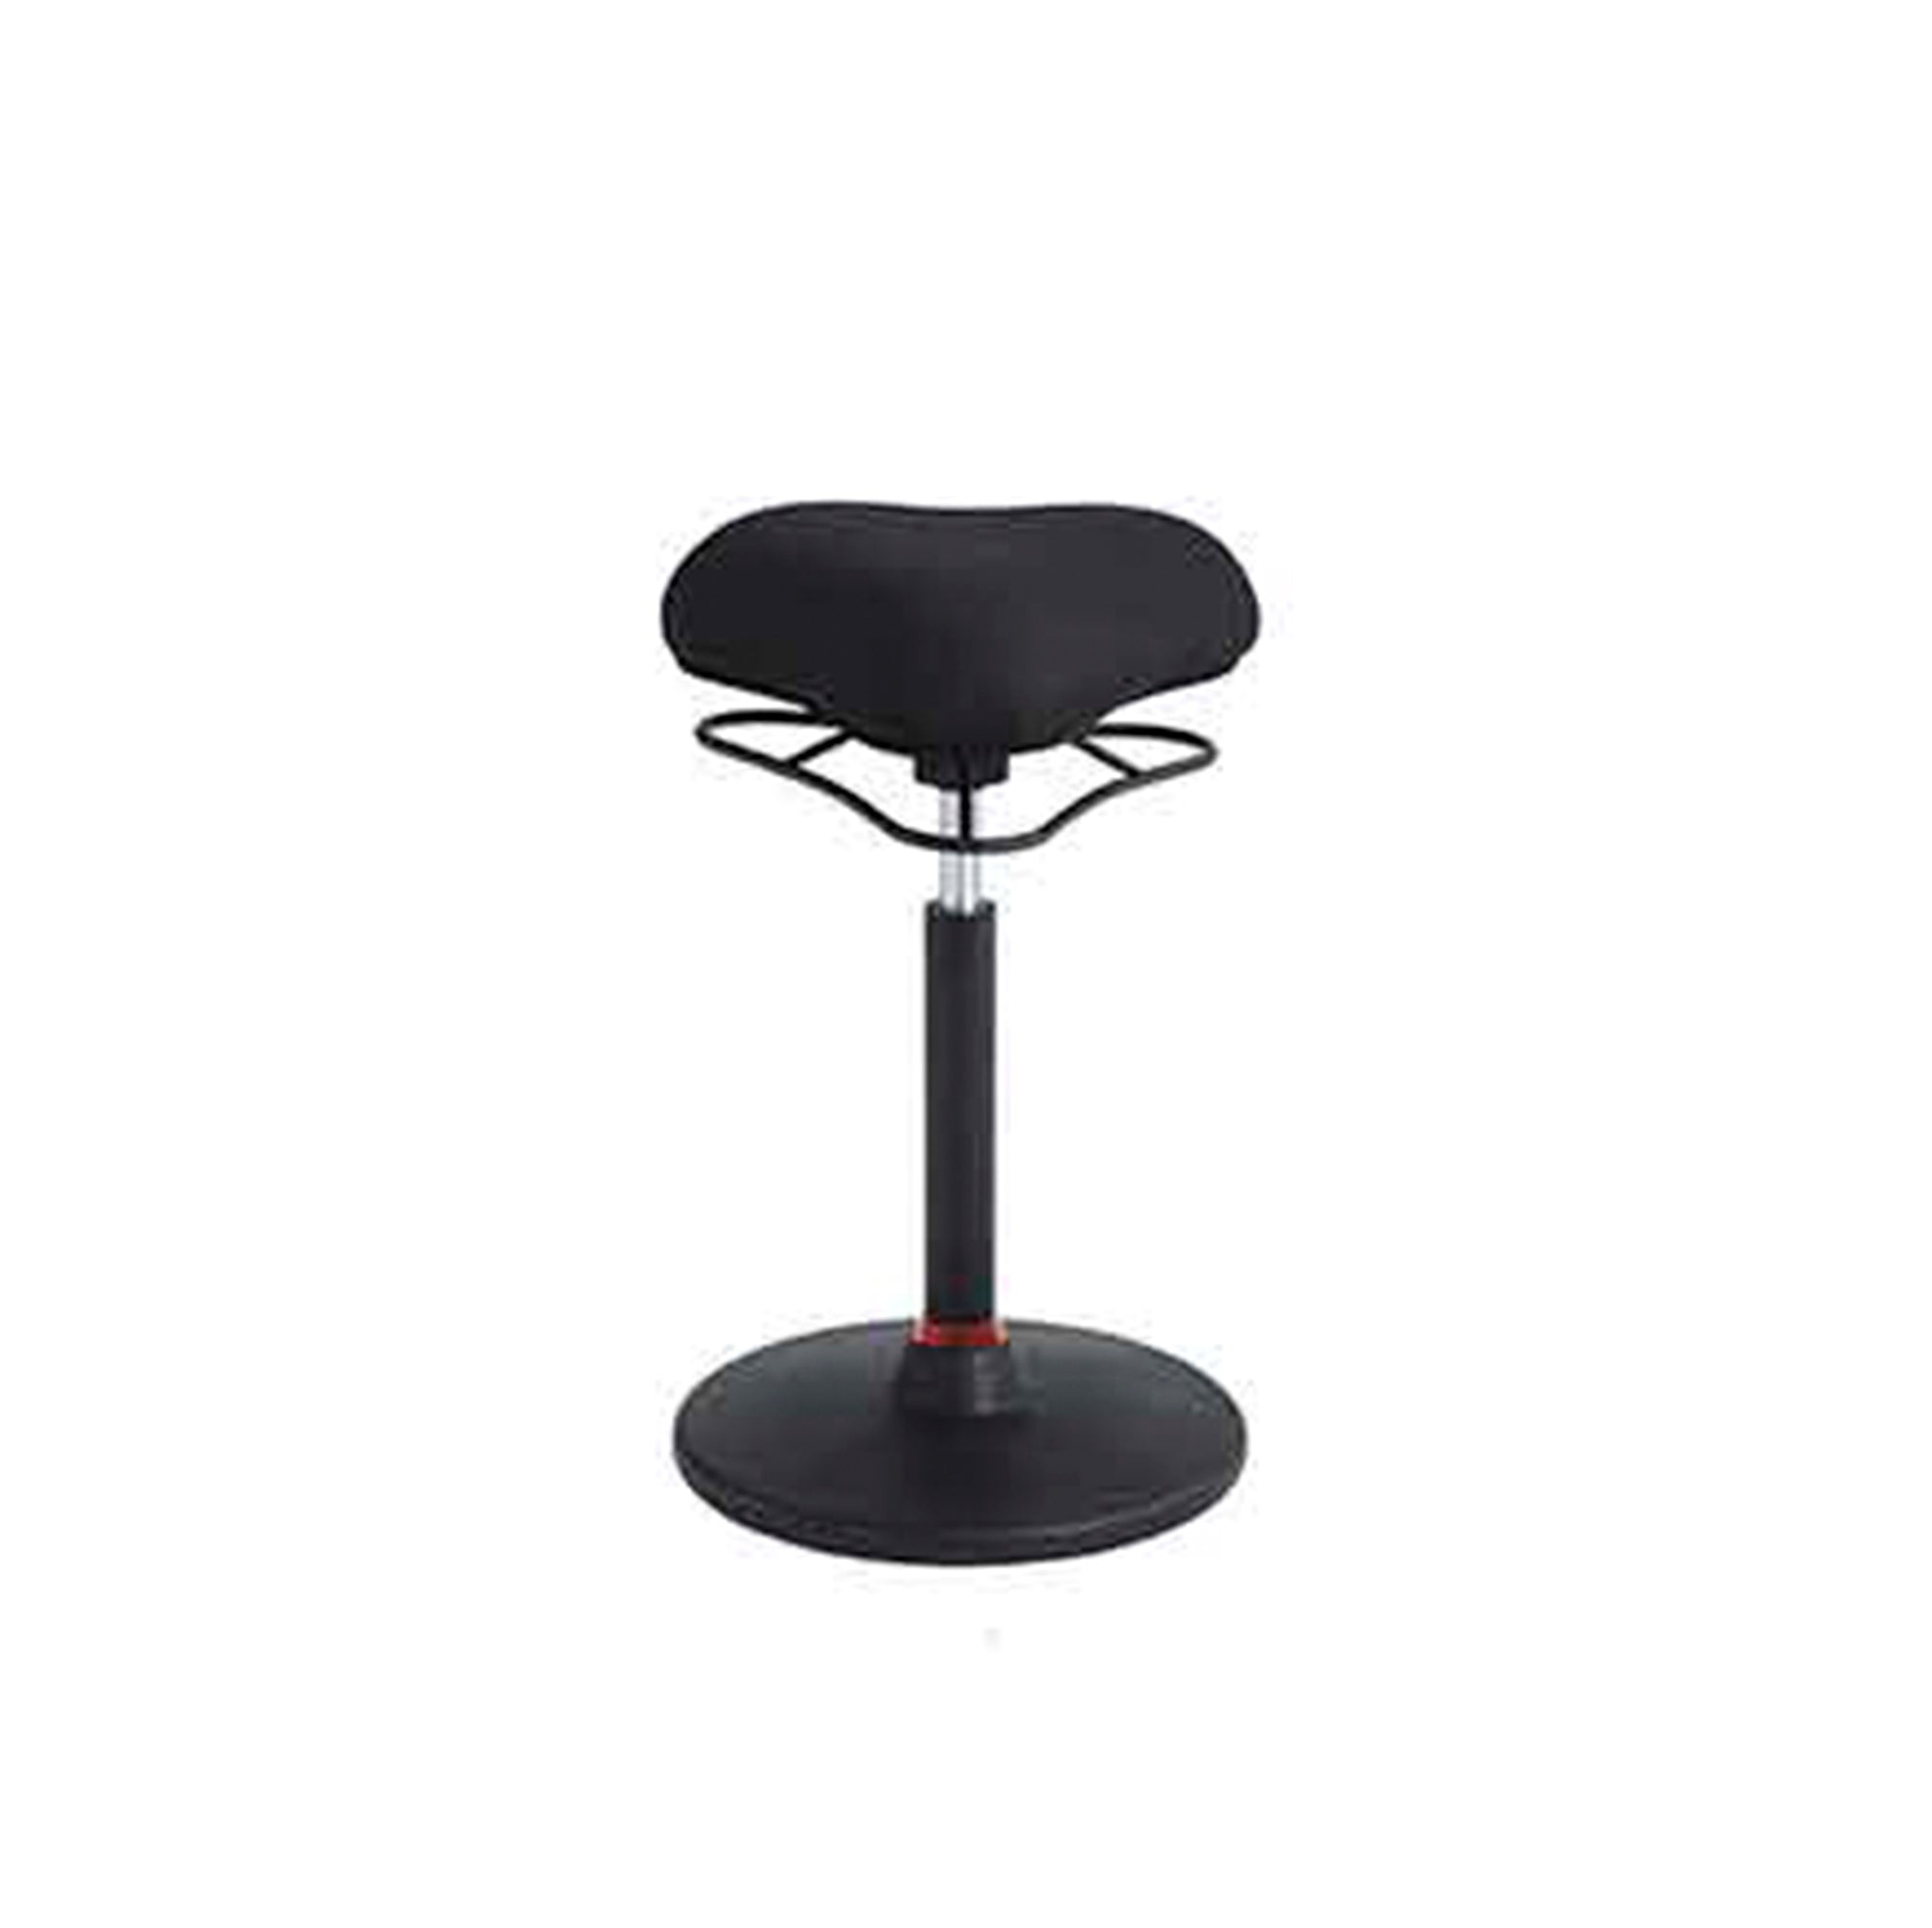 Pluto Wobbly Stool - Faux Leather